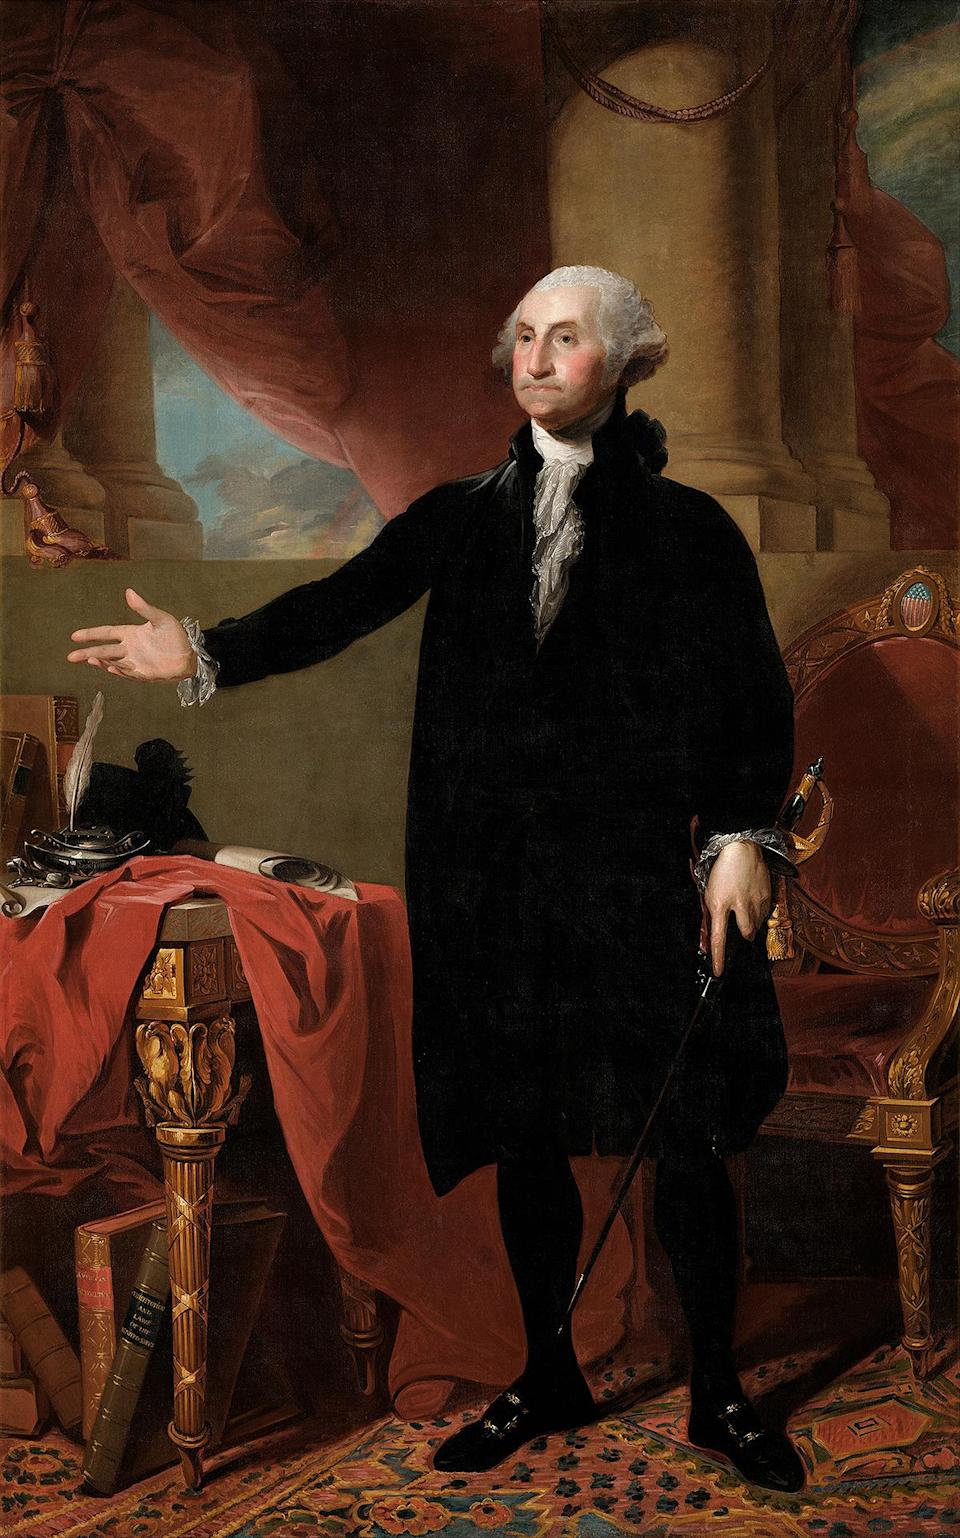 <p>Only one item was saved from the 1814 fire: a portrait of George Washington, which still hangs inside today. </p> <p>First Lady Dolley Madison — who lived in the White House at the time — refused to leave the burning building until the portrait was accounted for. </p>